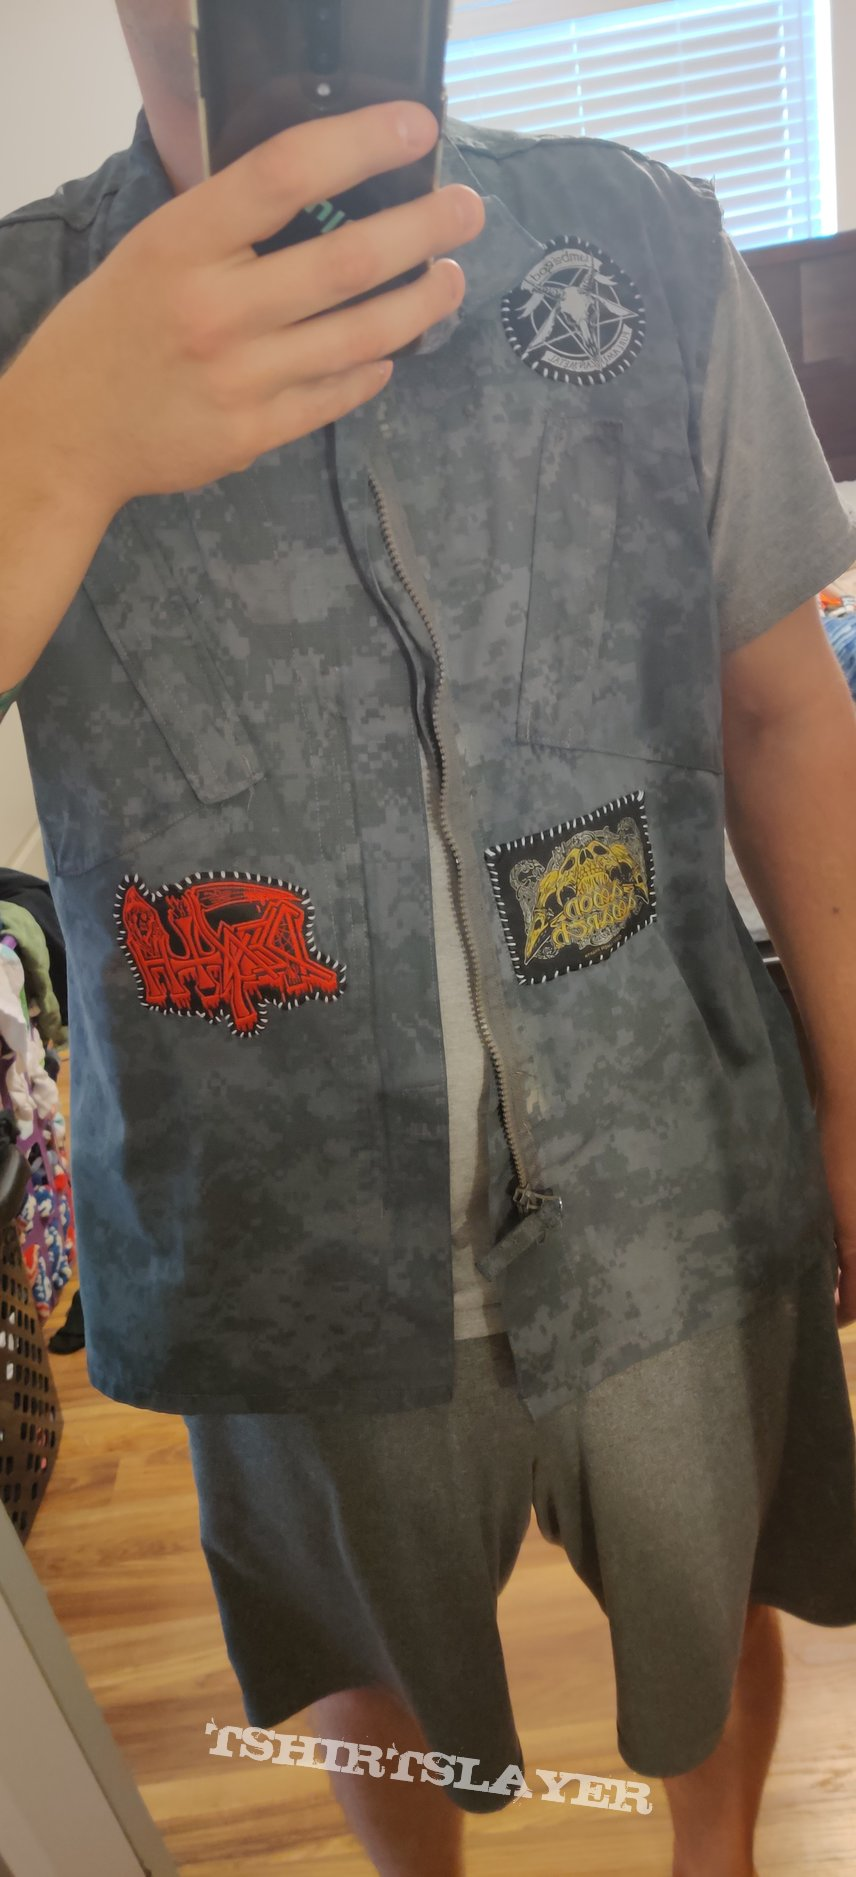 Just started my battle vest